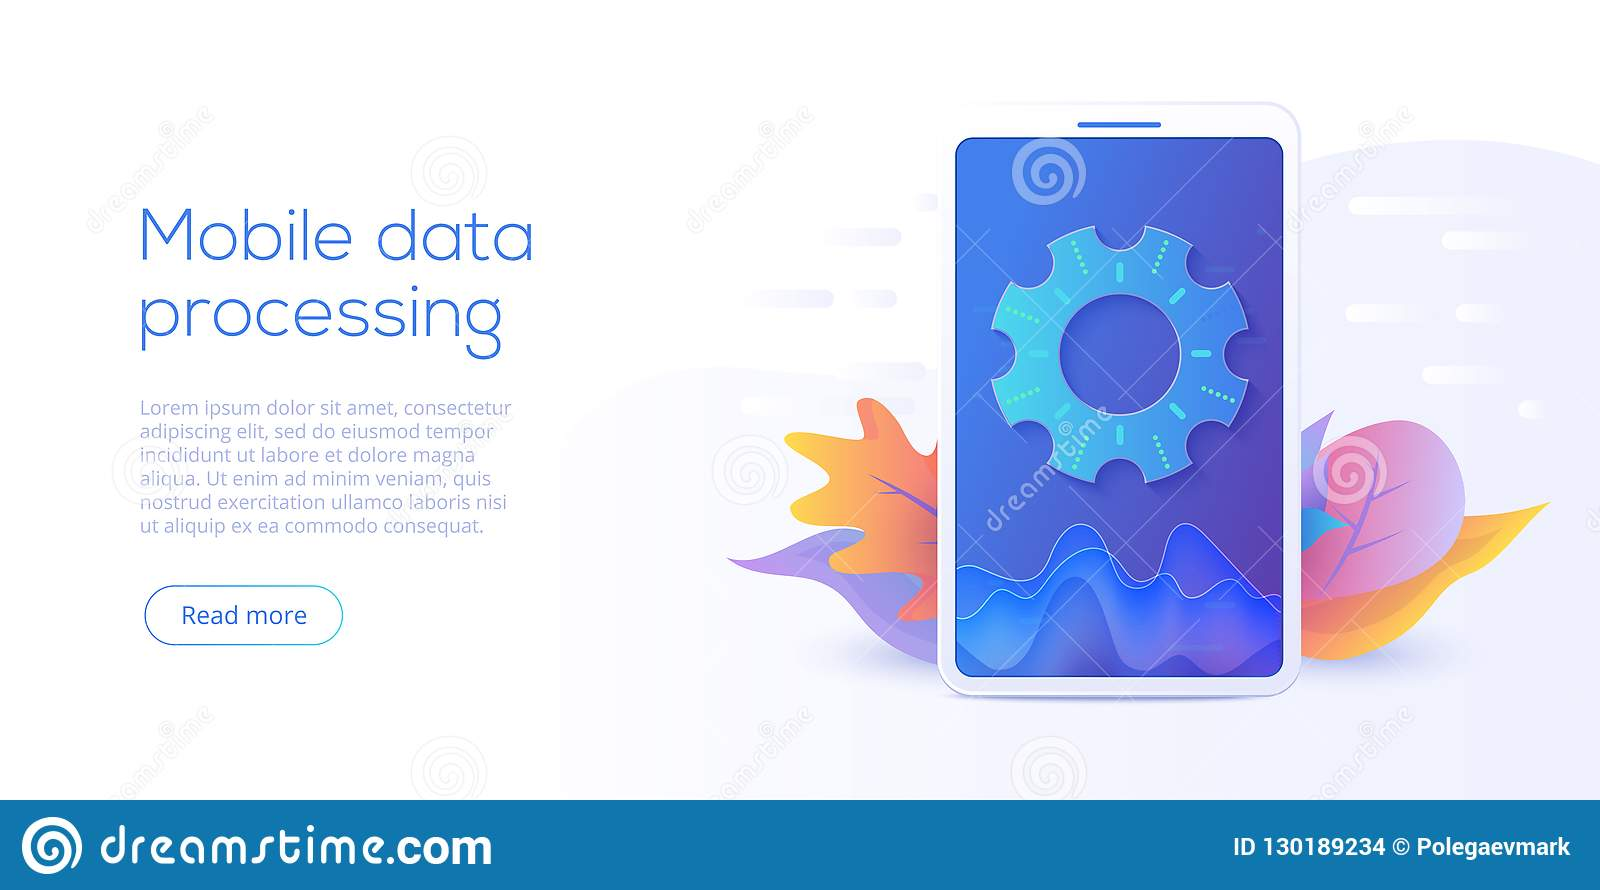 Mobile data processing technology in isometric vector illustration. Information storage and analysis system. Digital technology w